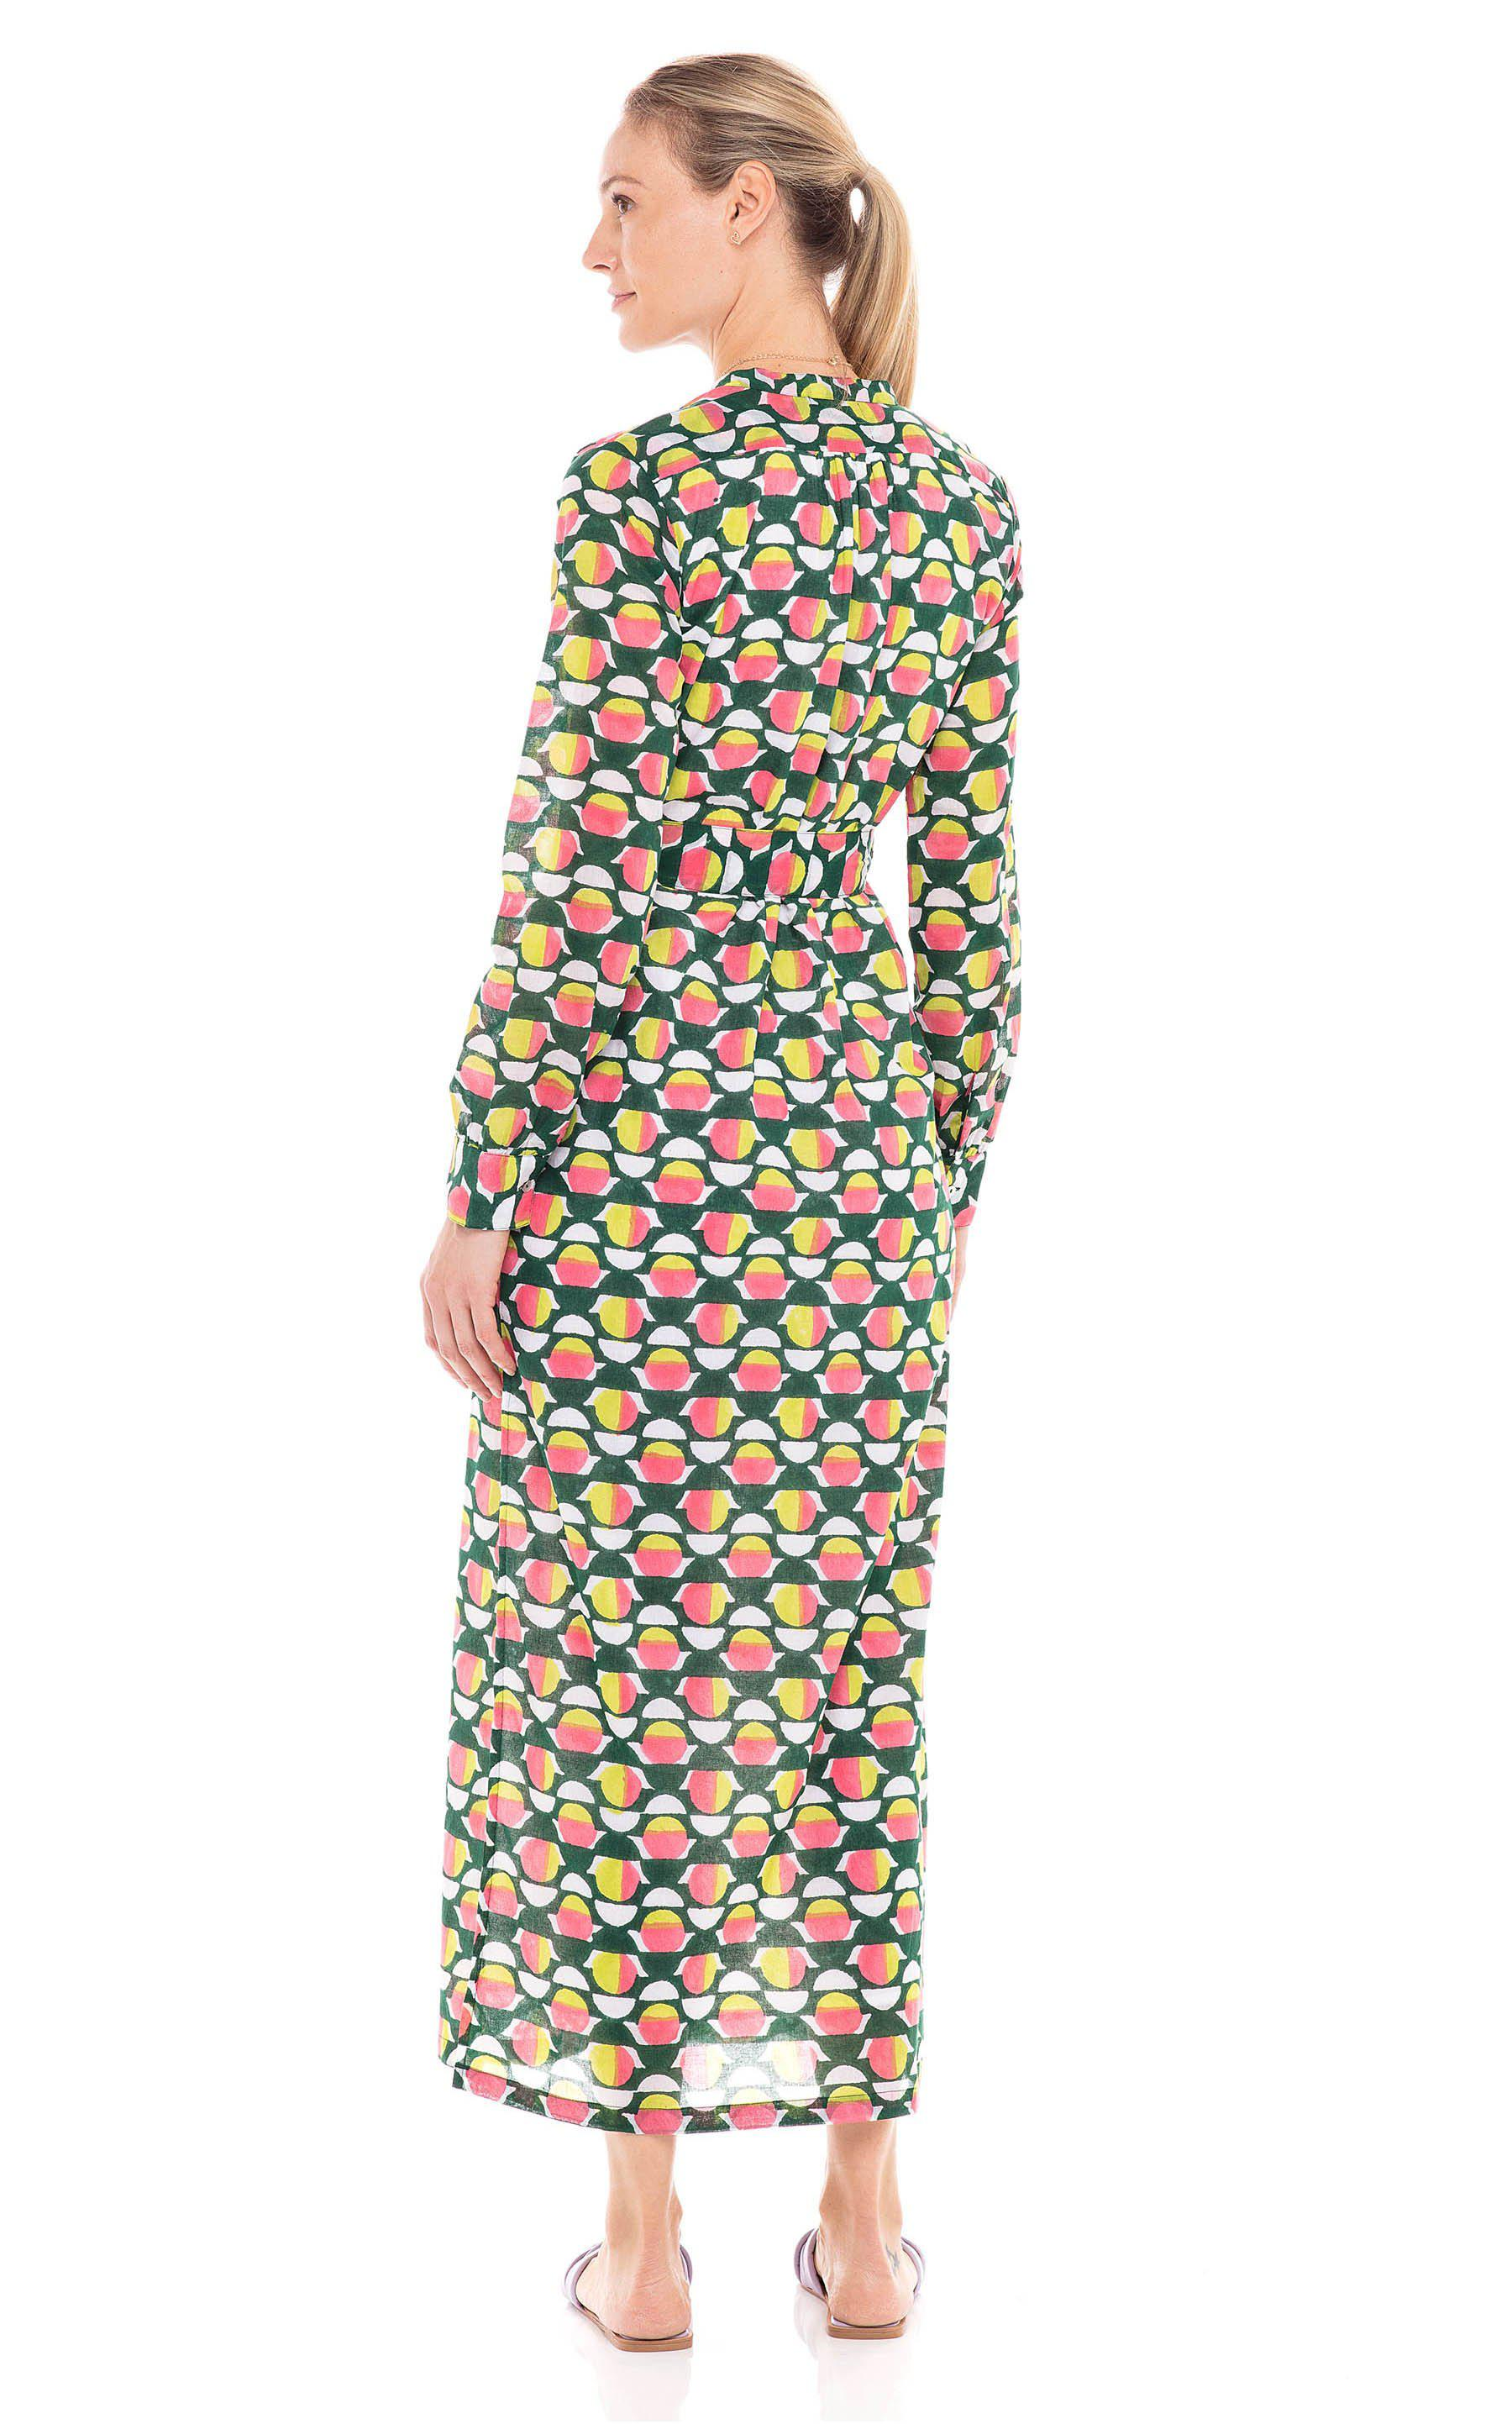 Crystal Dress Curlew Curve Lime Green 2